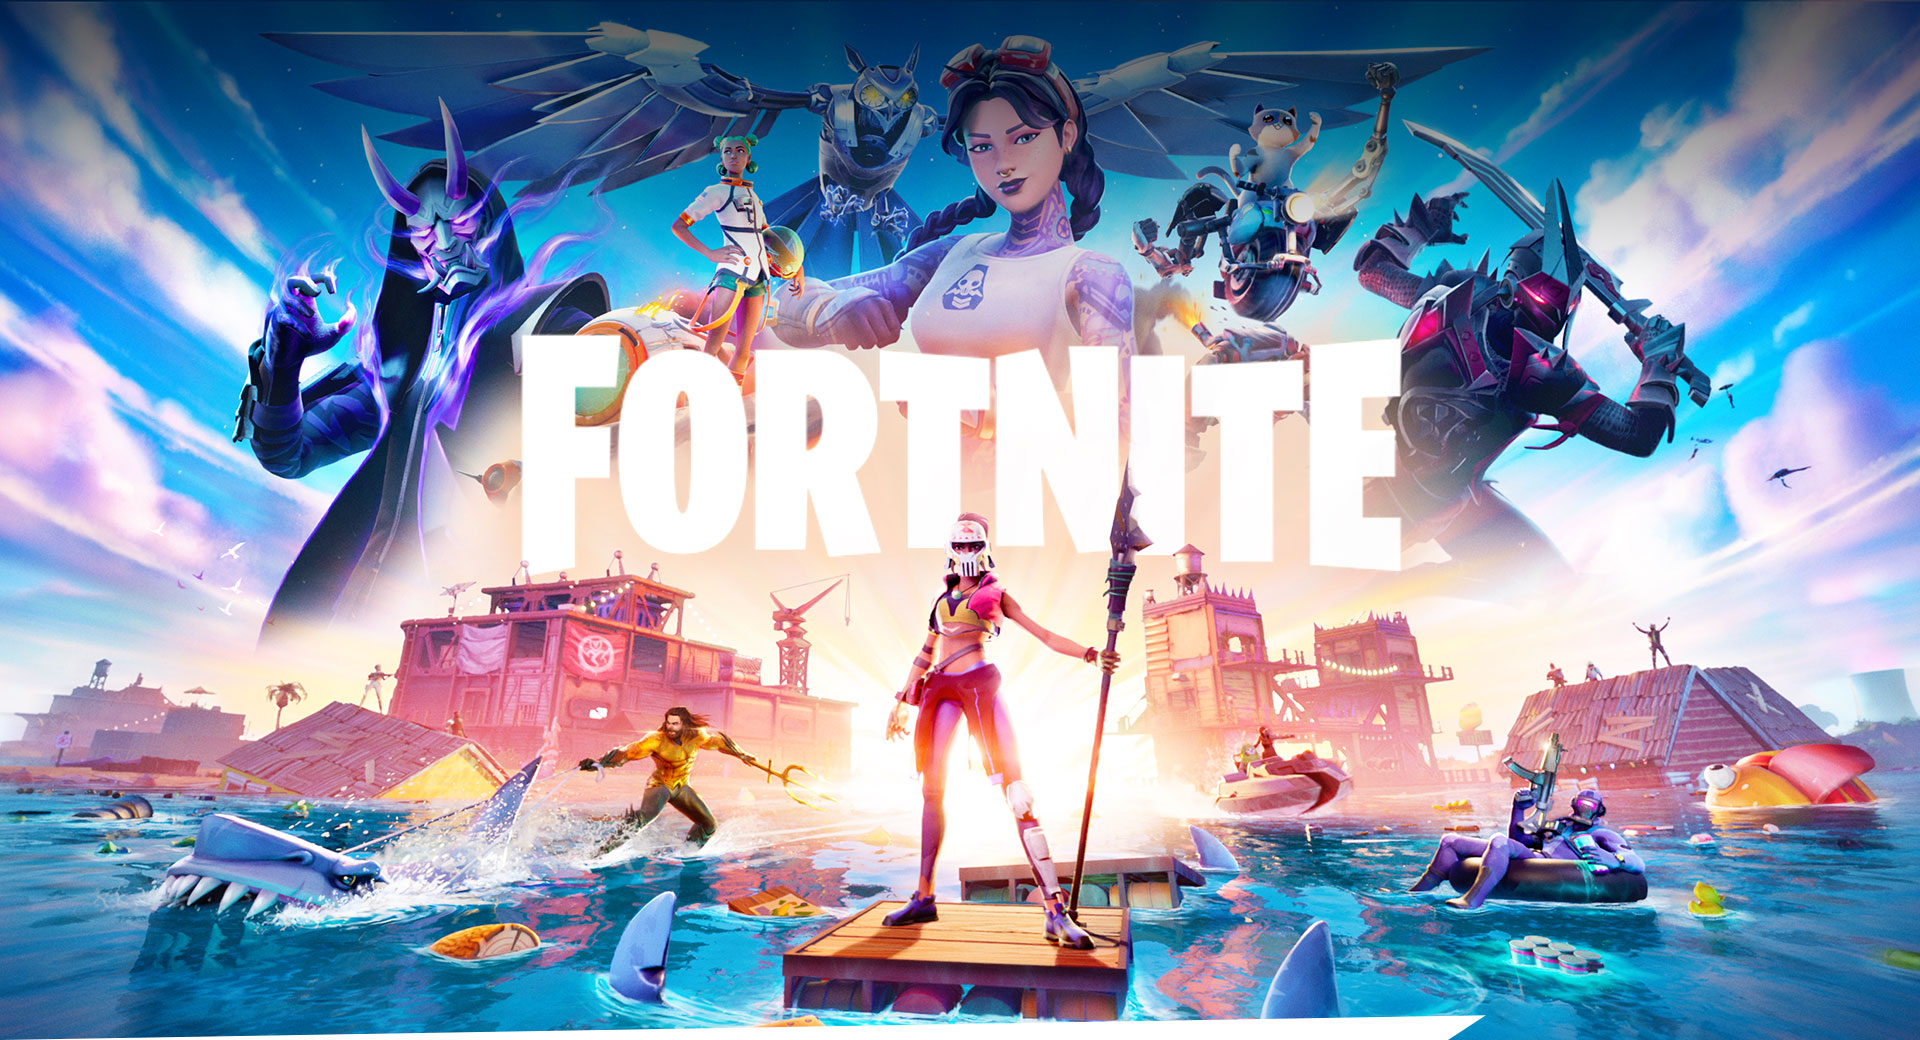 Fortnite, Aquaman and another character stand on the ocean with a floating town in the background.